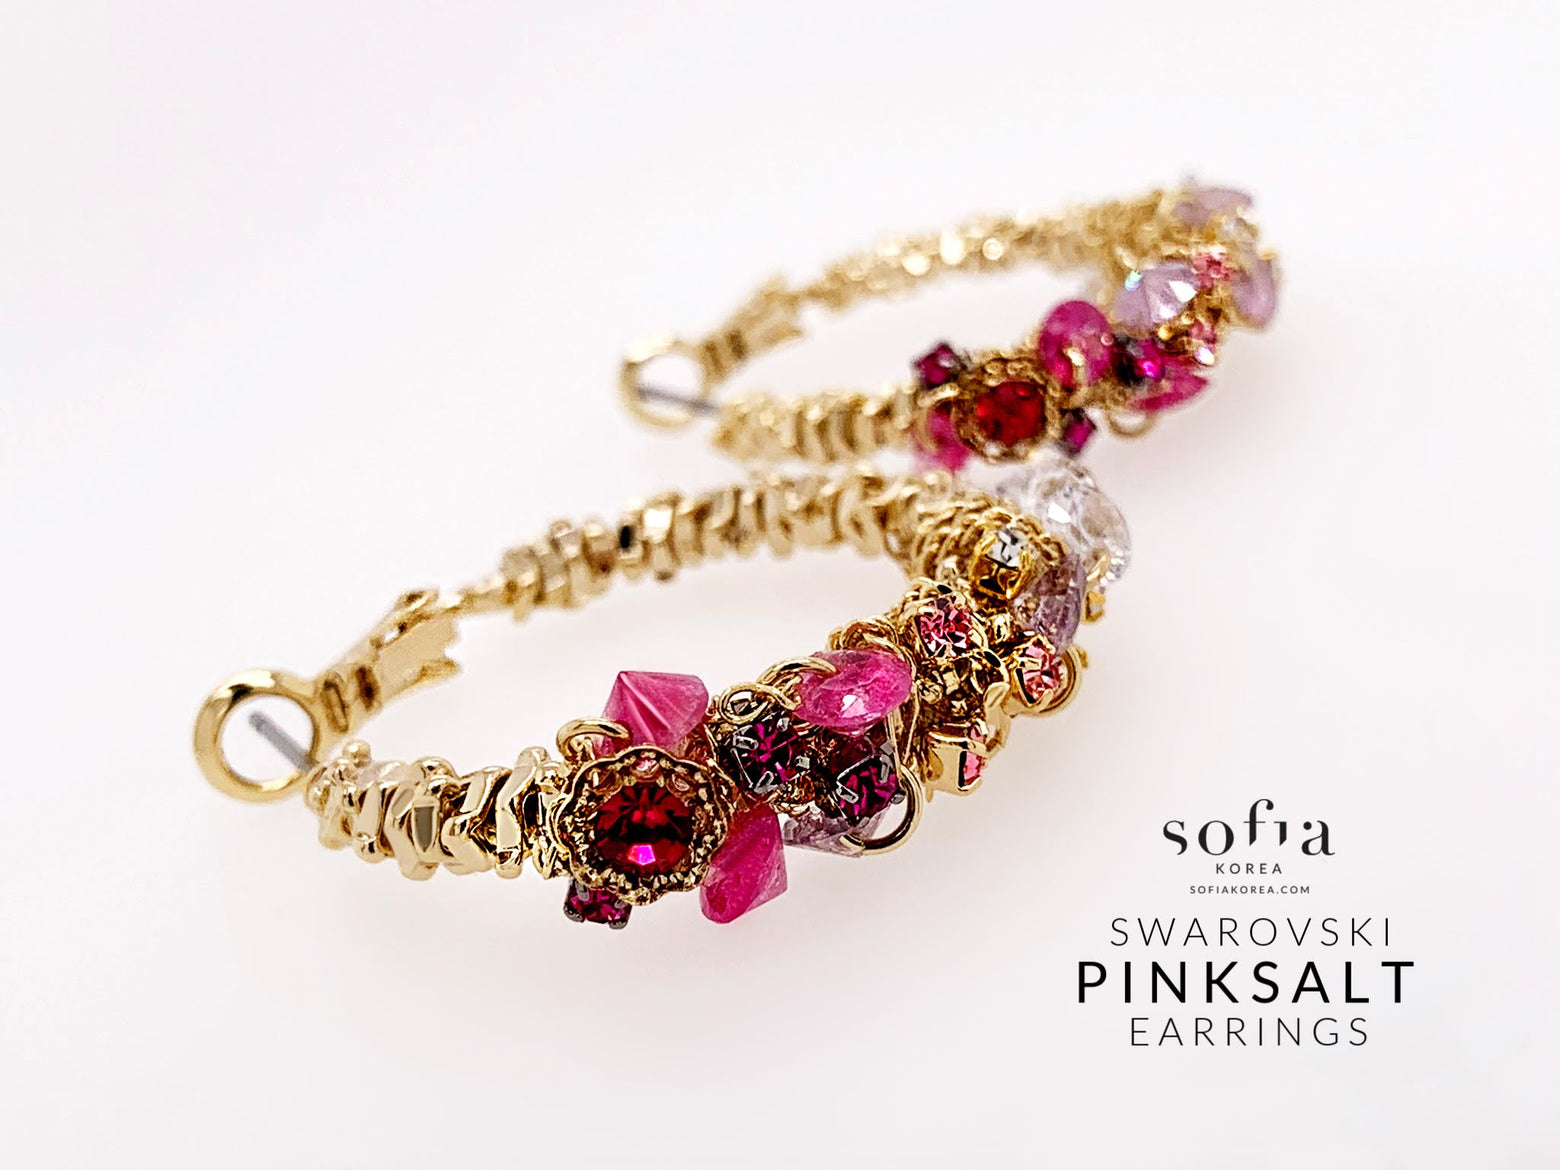 Pinksalt Earrings - Sofiakorea